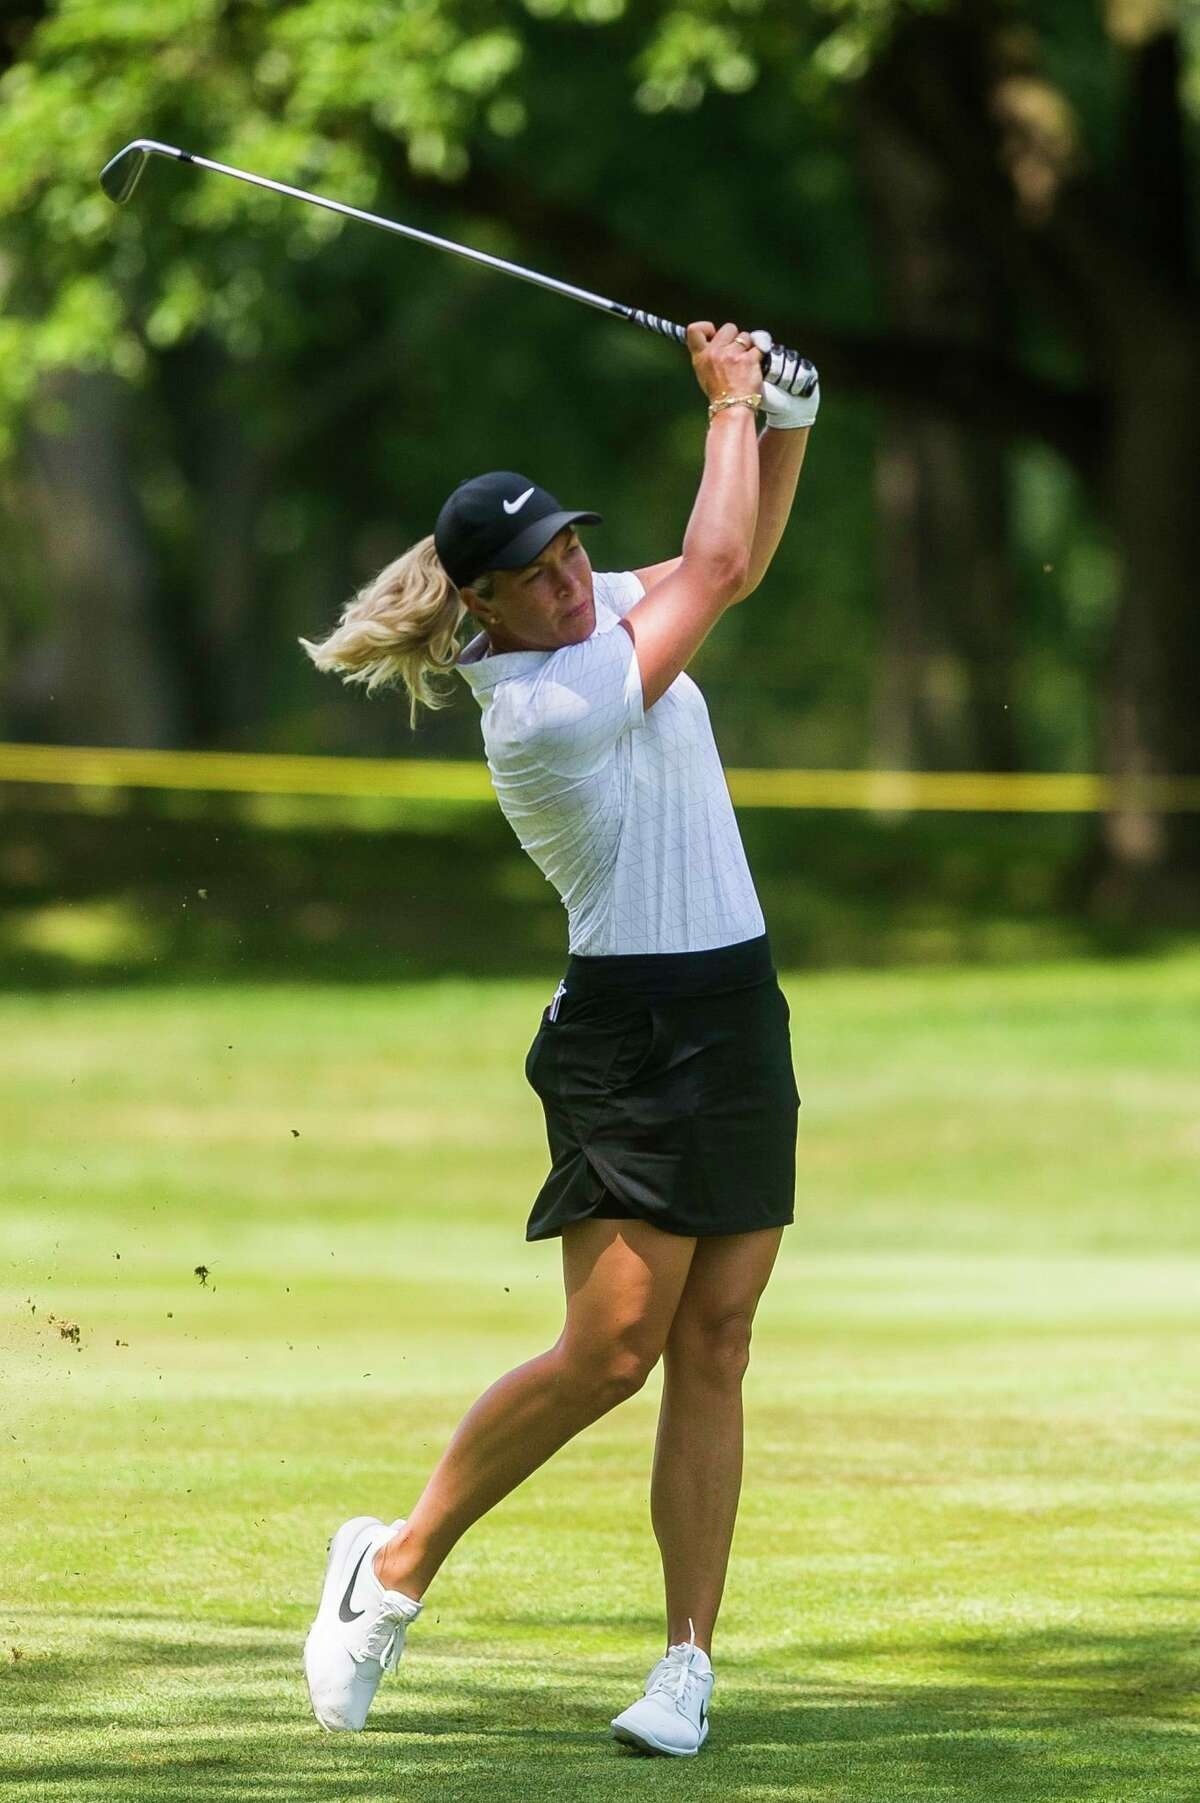 Suzann Pettersen plays in the first round of the Dow Great Lakes Bay Invitational last July at Midland Country Club. (Katy Kildee/kkildee@mdn.net)